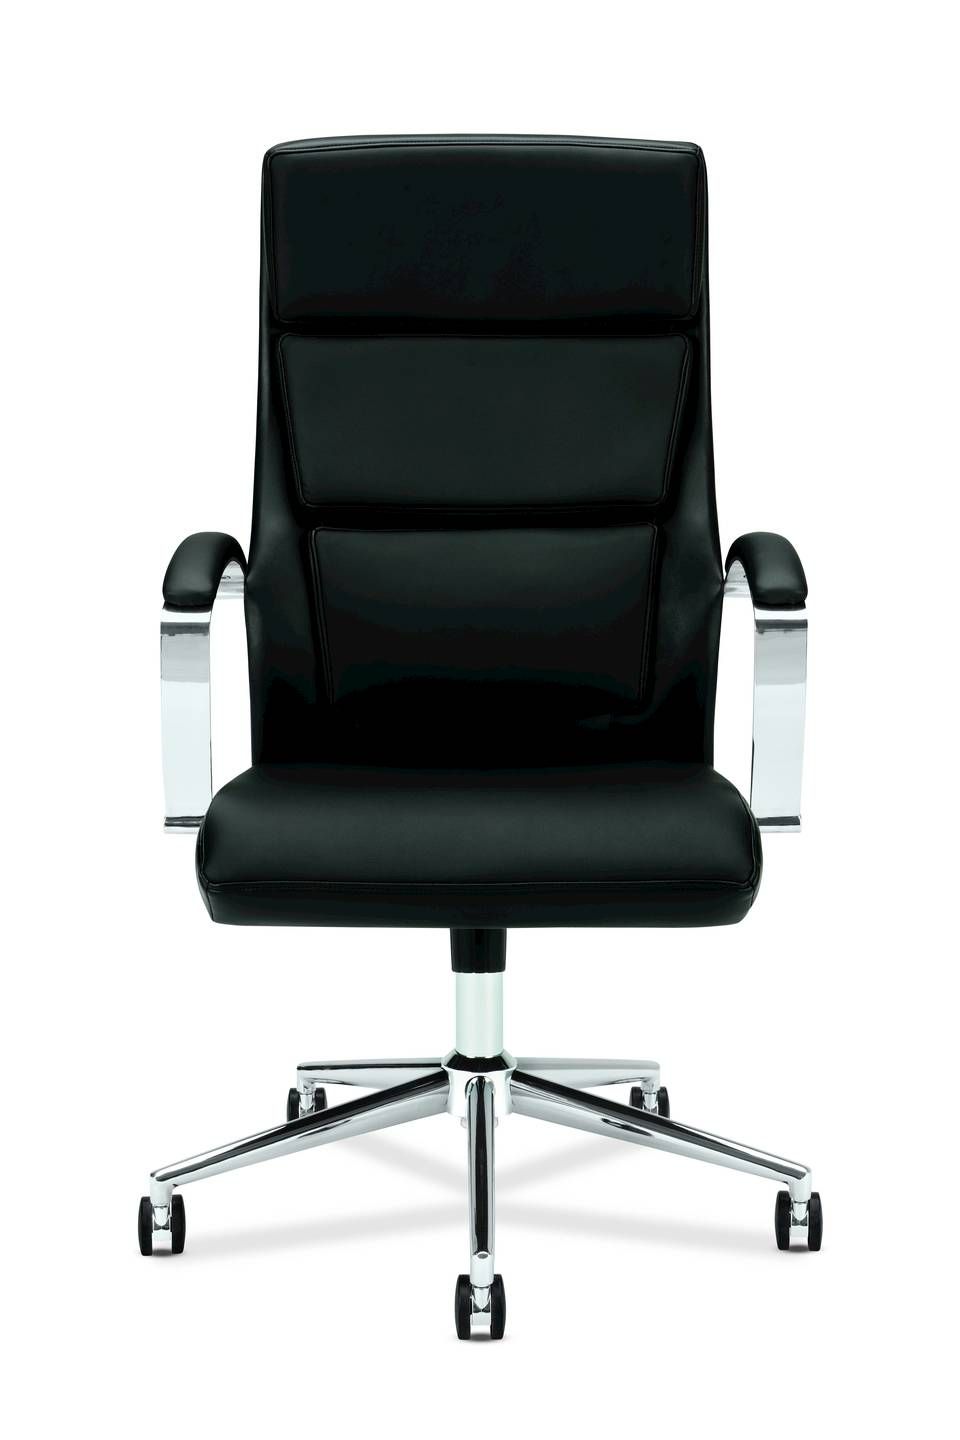 This VL105 Executive High Back Chair Has Center Tilt With Lock And Tension  Control. SofThread™ Leather Upholstery, An Integrated Headrest And Chrome  Arms ...